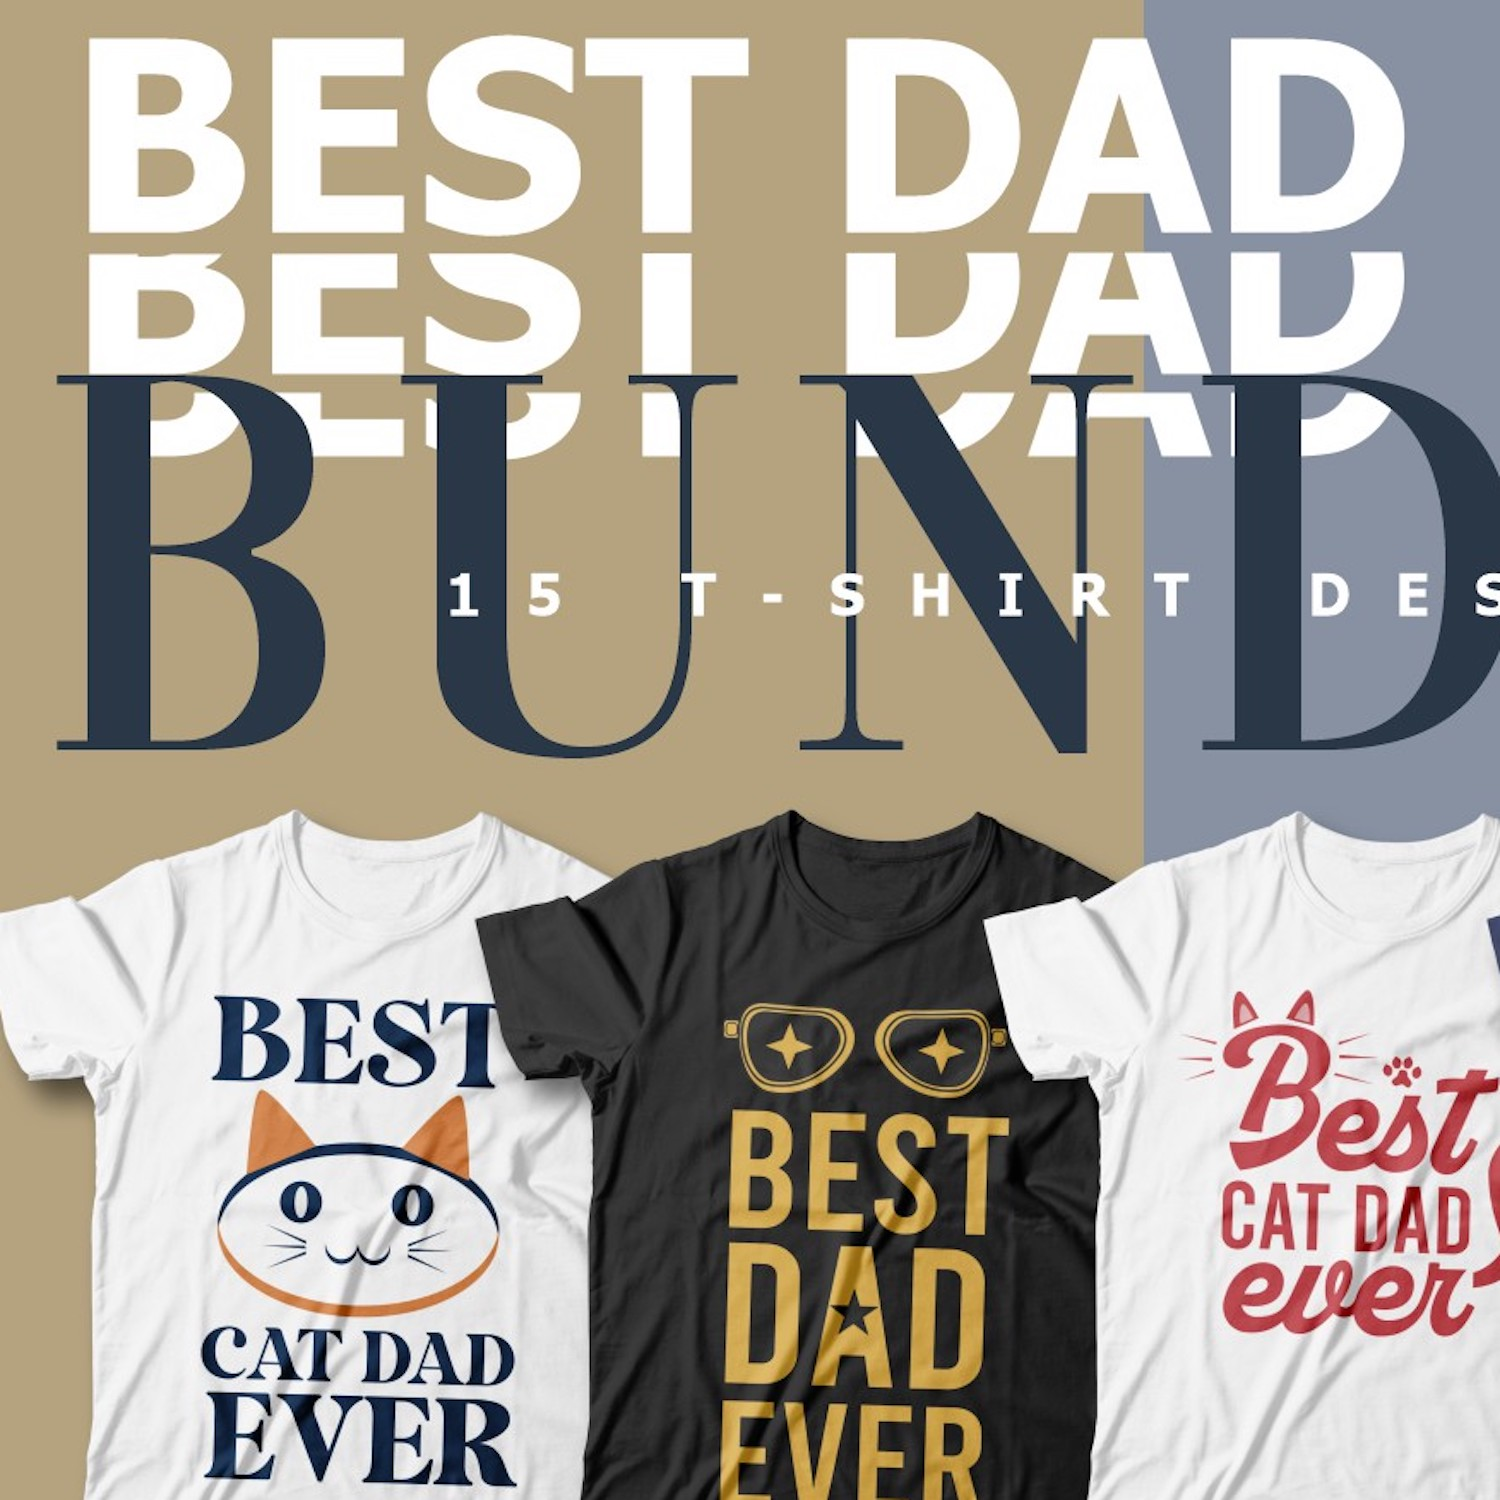 Best Dad Ever T-Shirt Designs cover image.